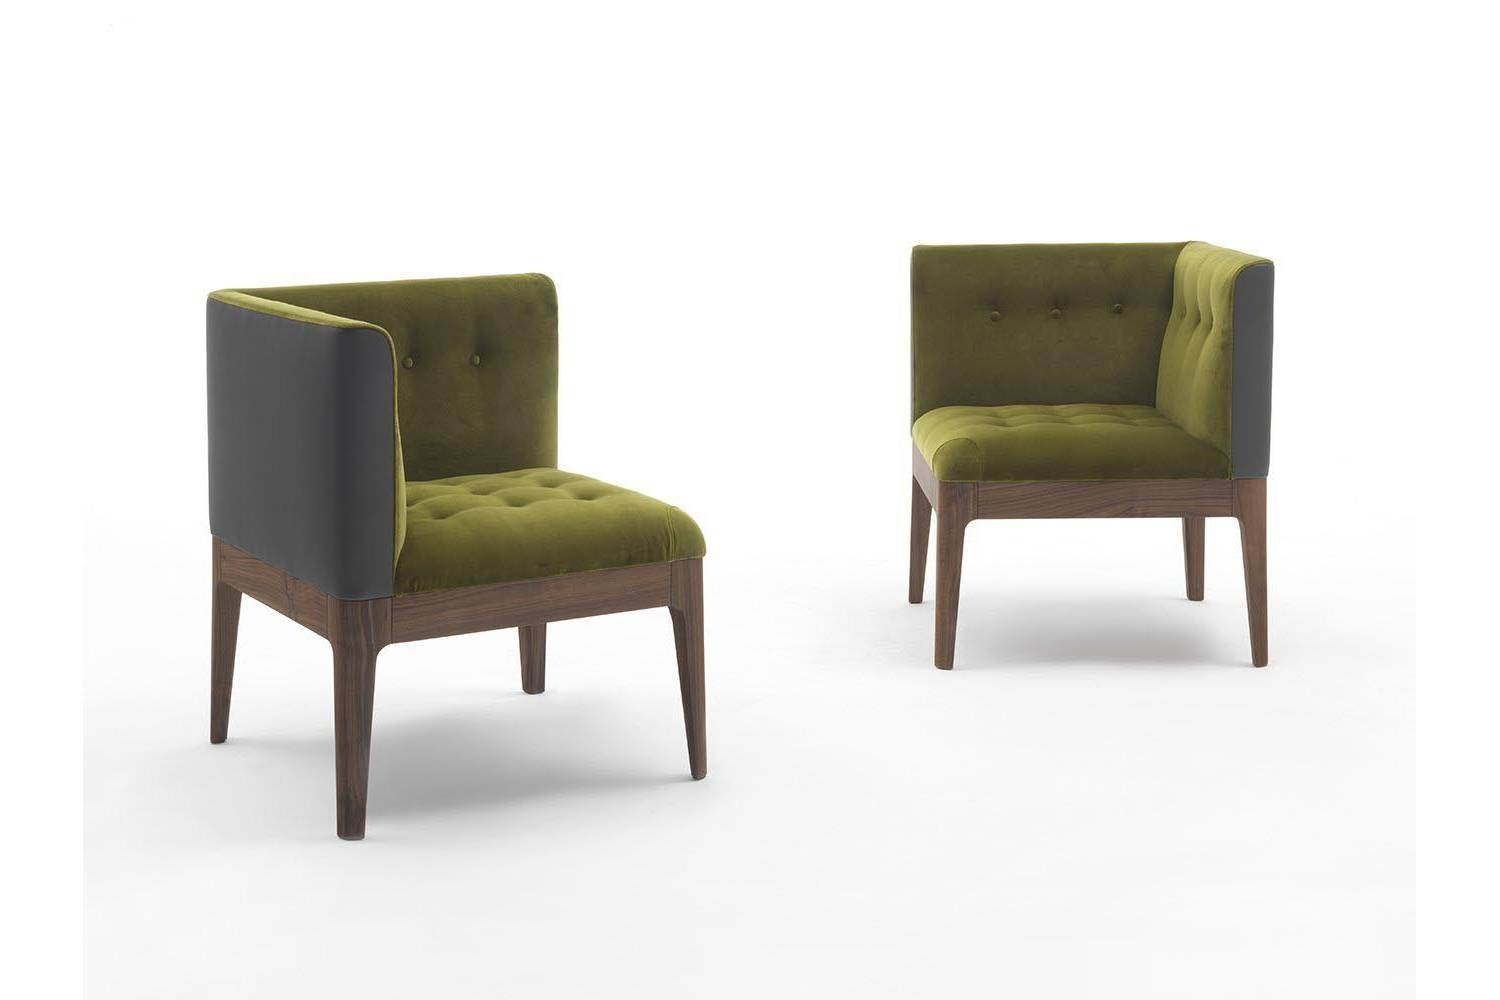 Wendy 1 Corner Chair by C. Ballabio for Porada